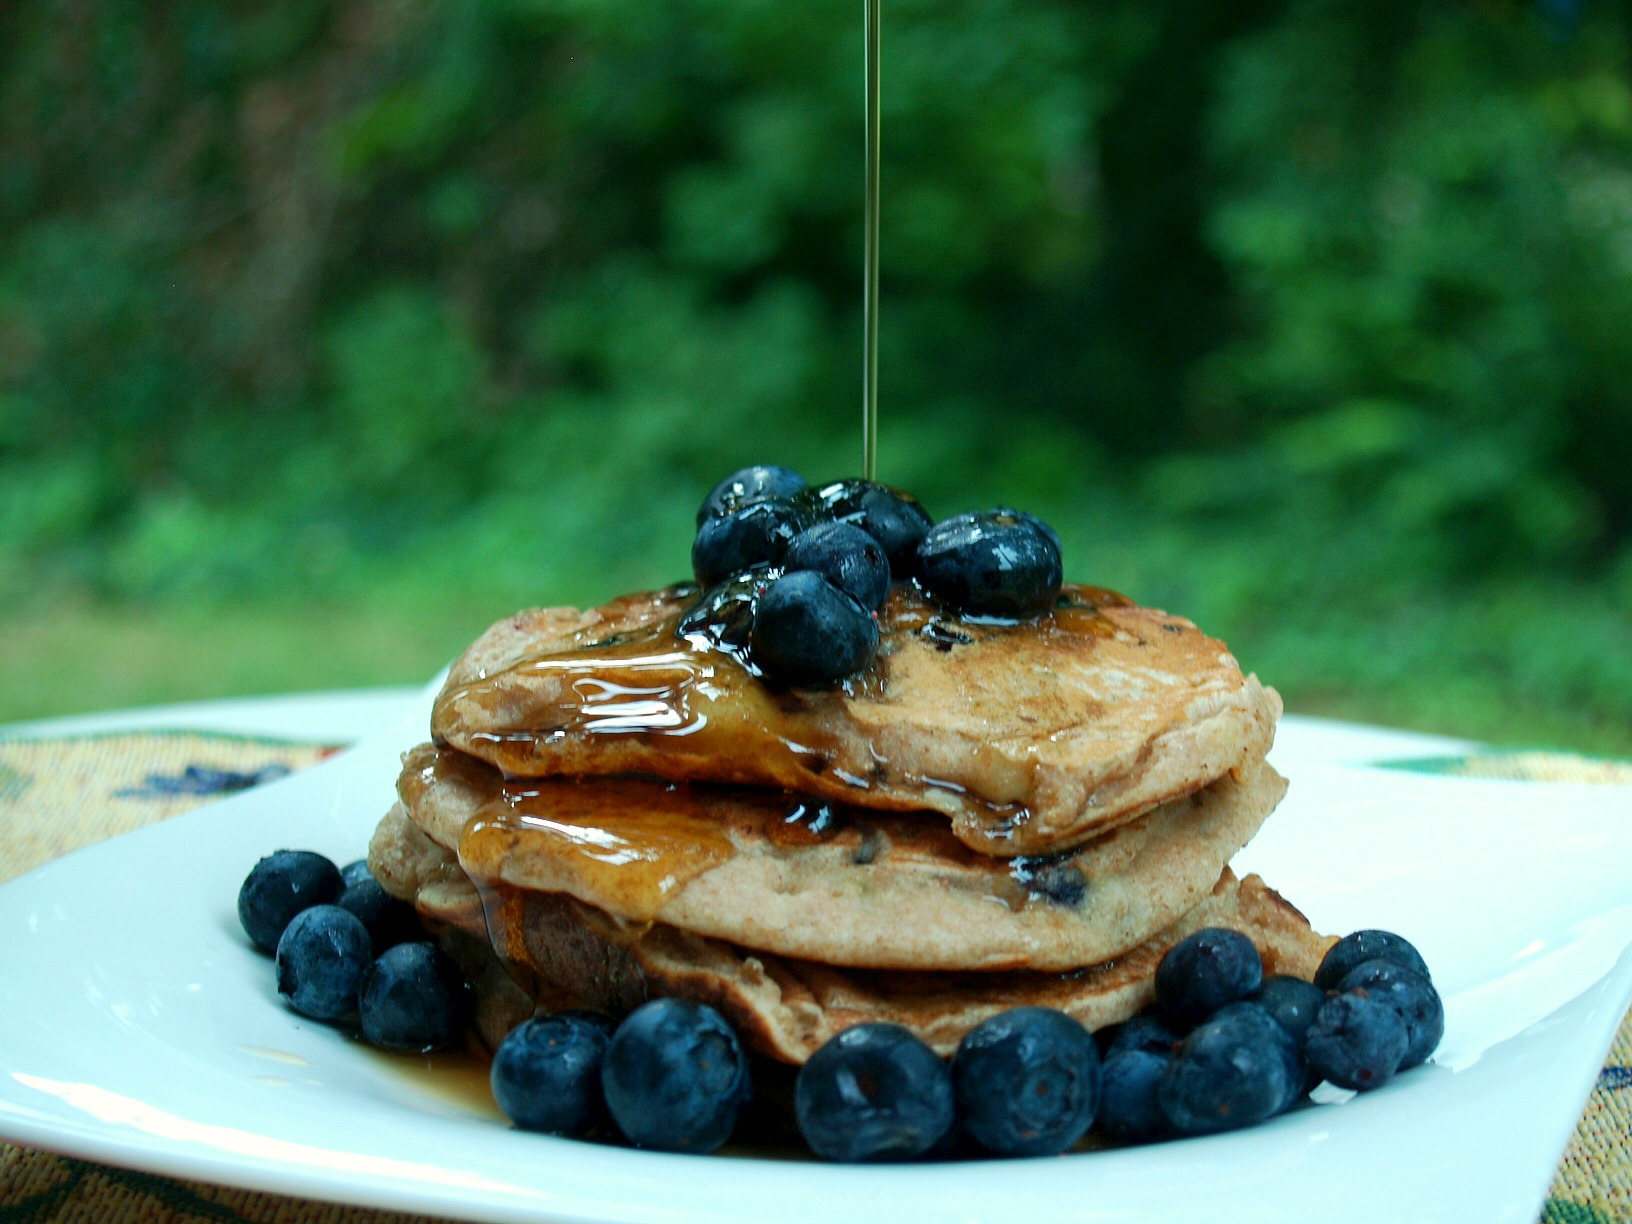 Whole-Grain Banana Blueberry Pancakes recommendations